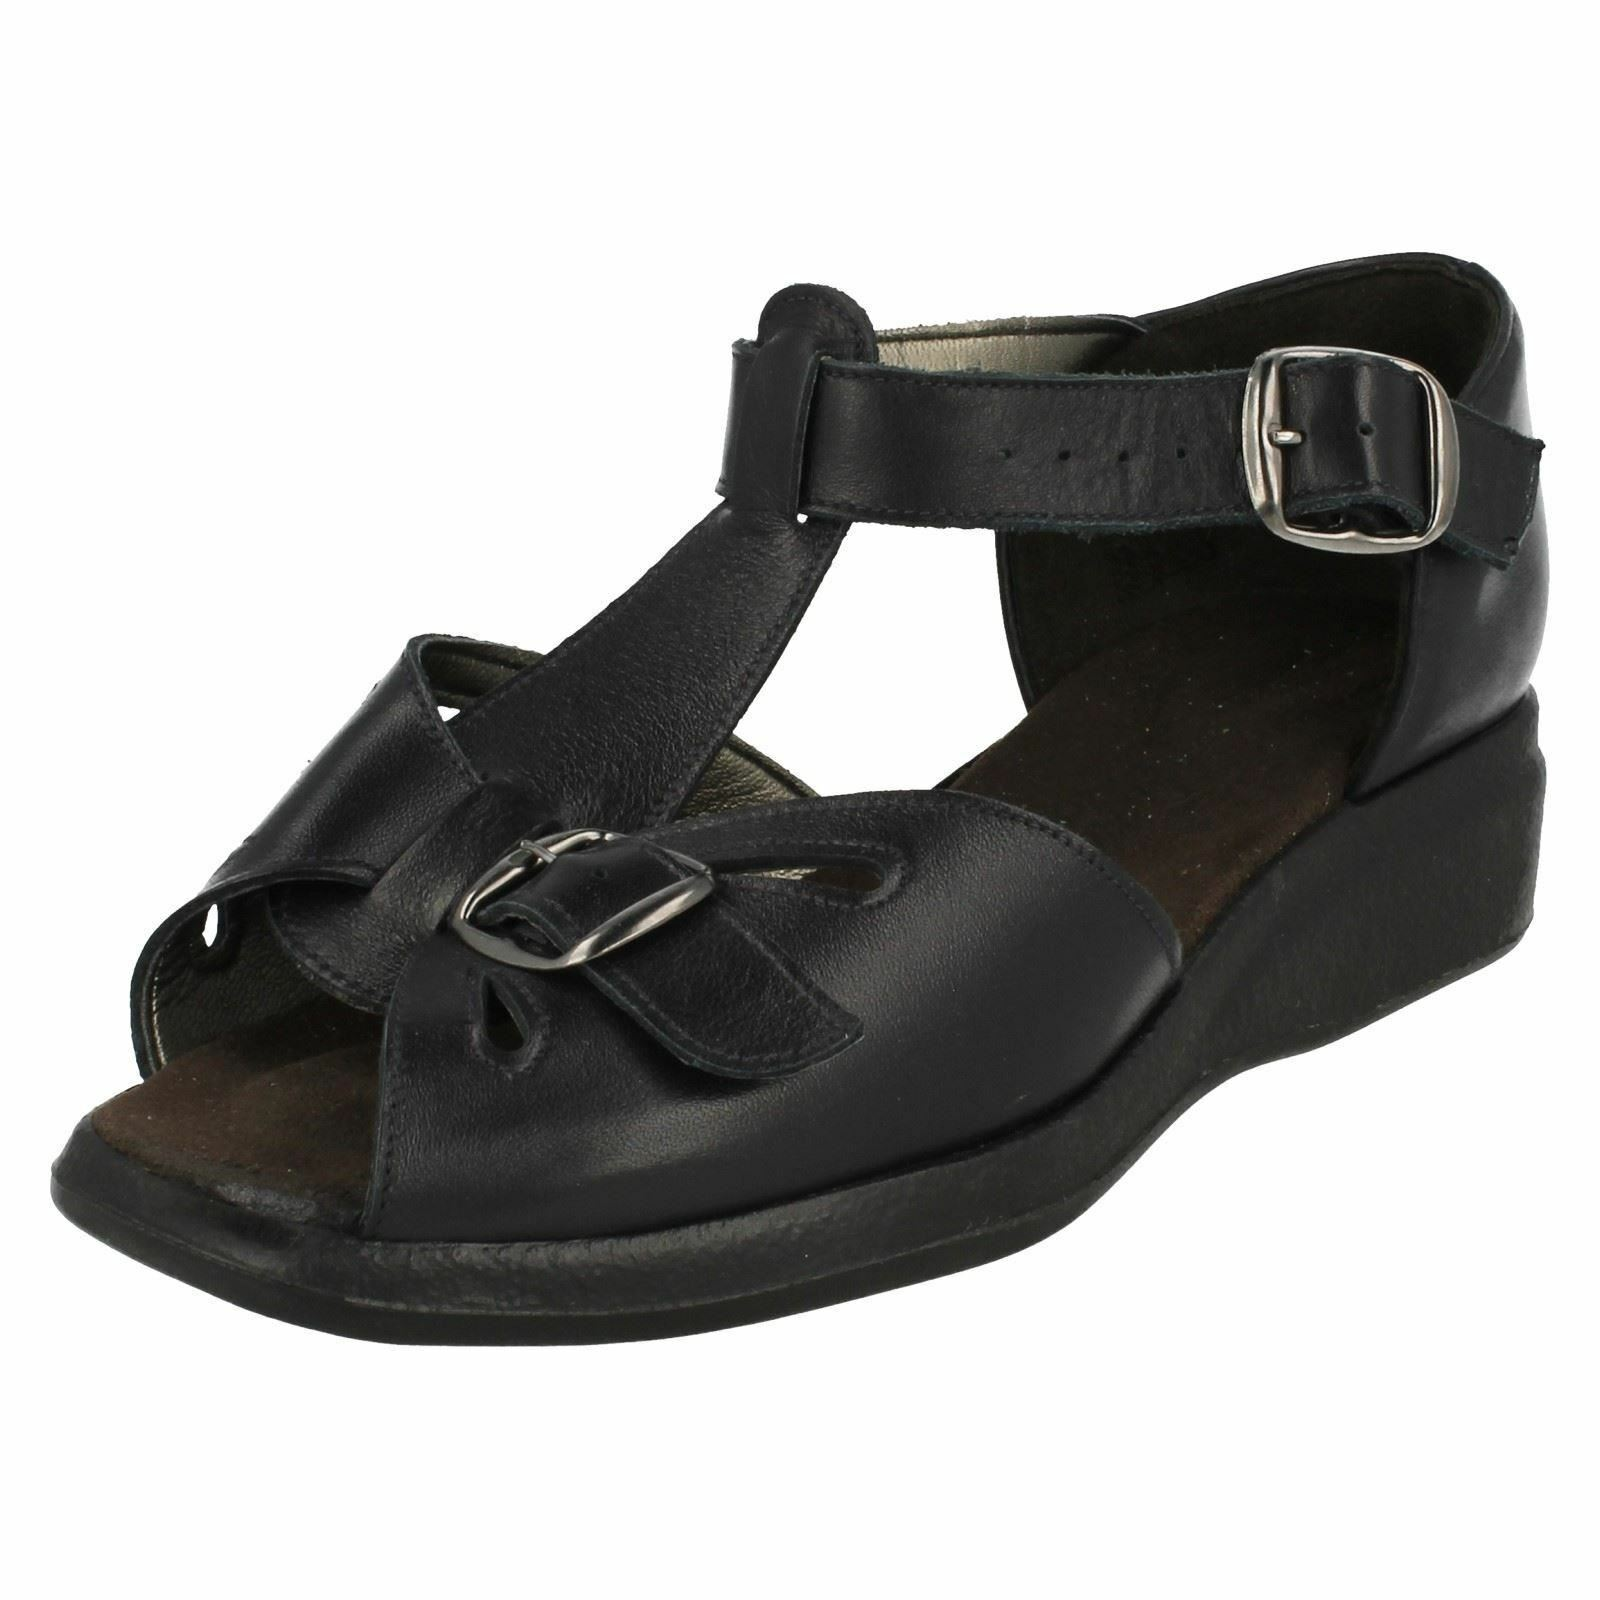 Ladies Semele size by E navy leather sandal by size Equity a6a77e